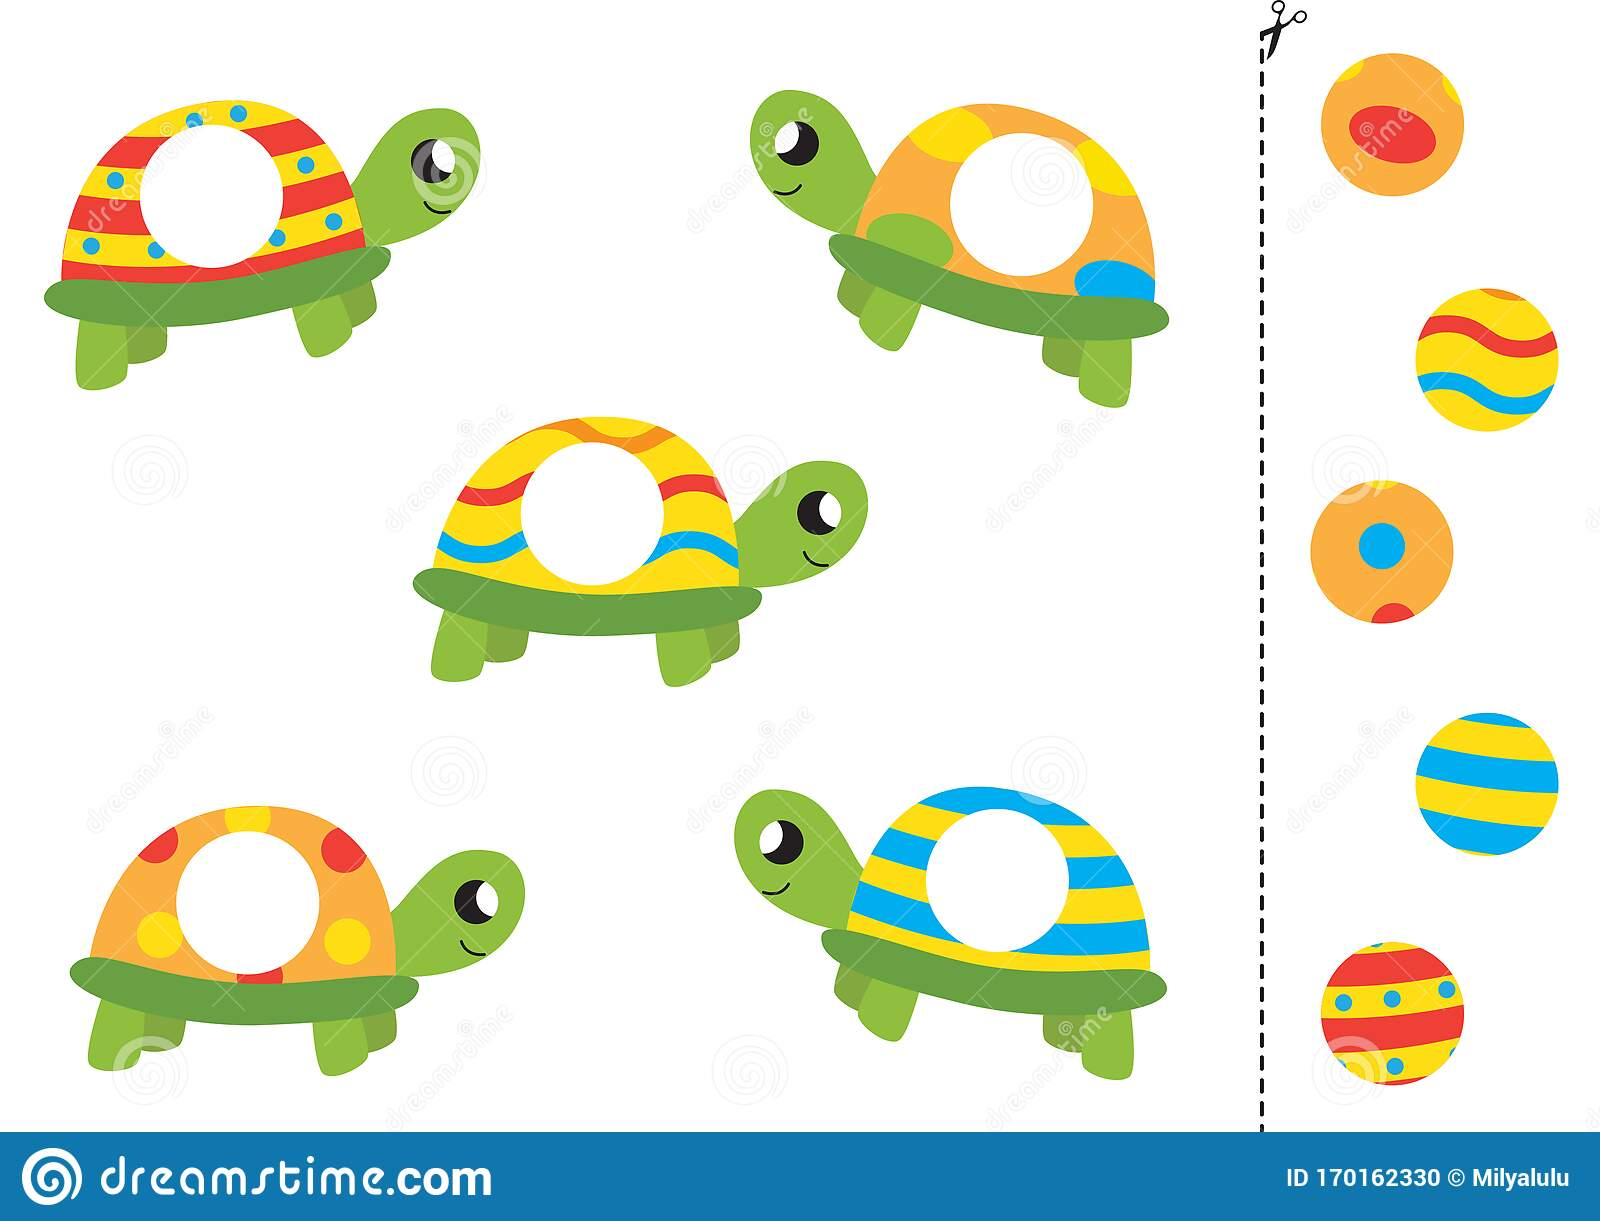 Match Parts Of Cute Cartoon Turtles Funny Worksheet For